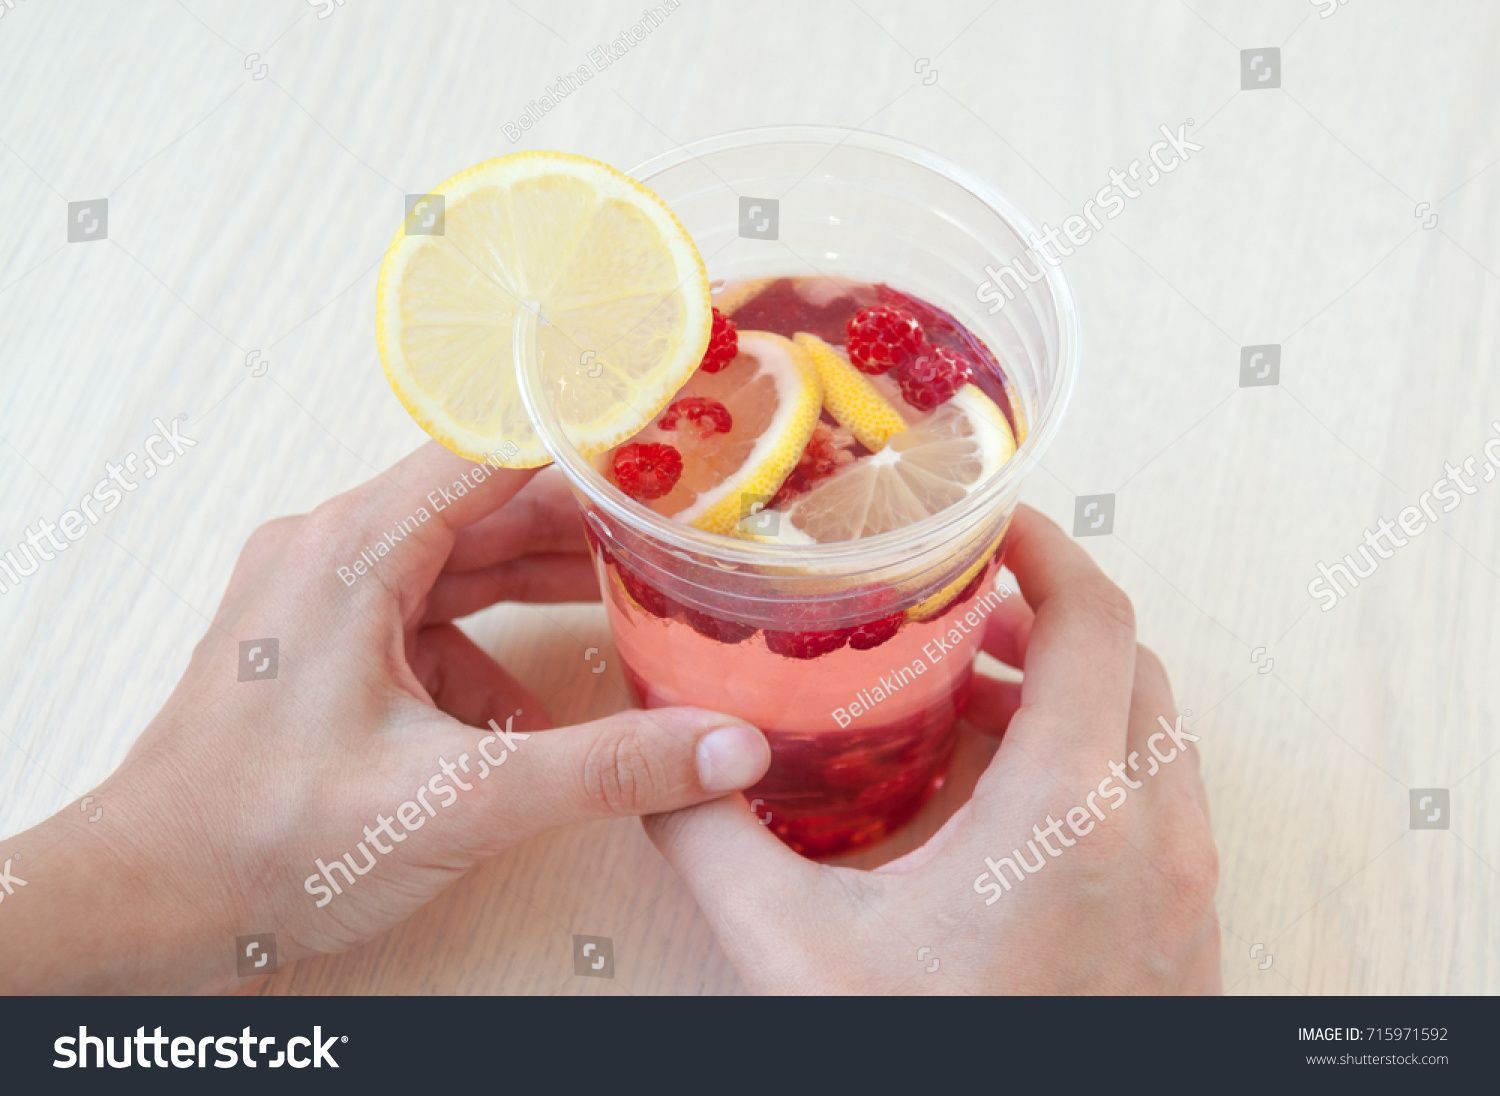 Female Hands Hold Glass With Drink Of Lemon And Raspberry Ad Sponsored Hold Hands Female Glass In 2020 Drinks Glass Hold On